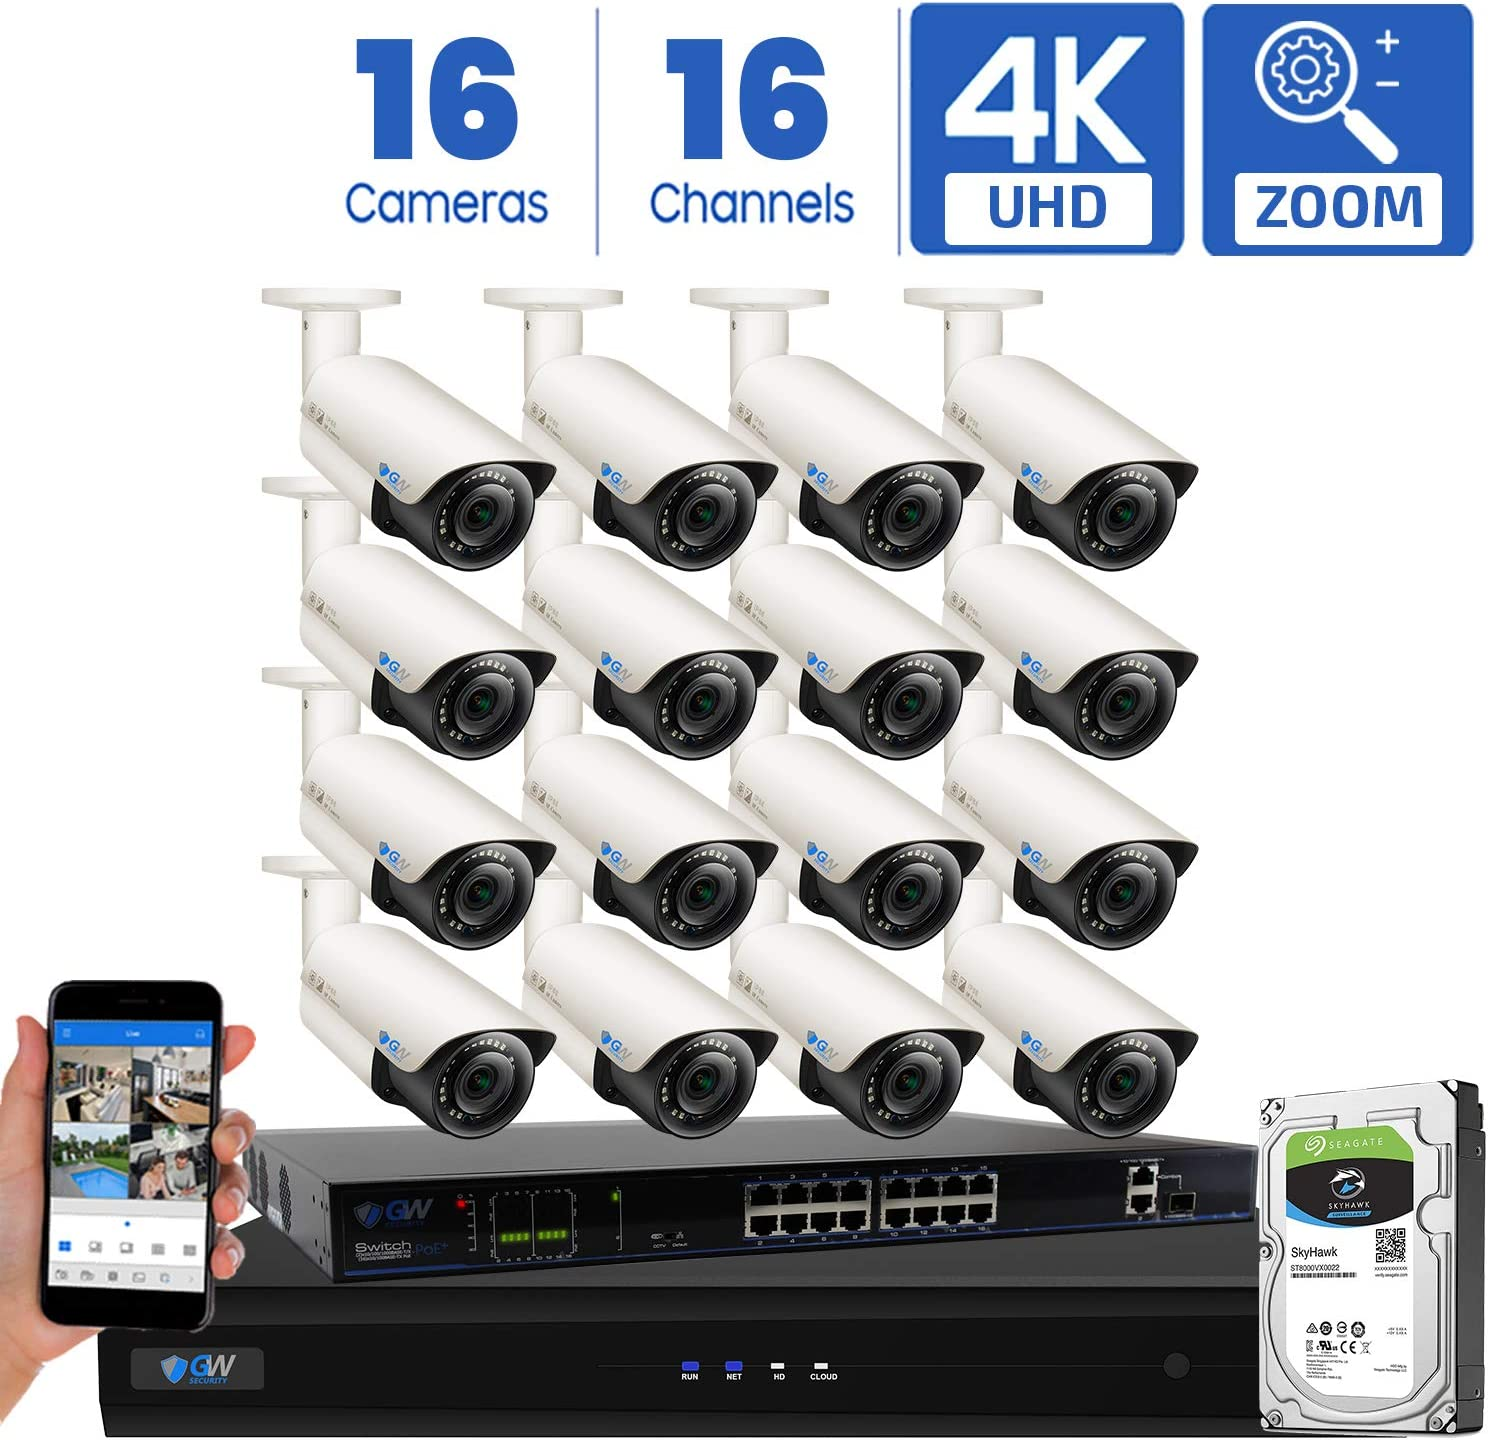 GW Security AutoFocus 4K 8MP IP Camera System, 16 Channel H.265 4K NVR, 16 x 8MP UltraHD 3840×2160 Bullet POE Security Camera 4X Optical Motorized Zoom Outdoor Indoor